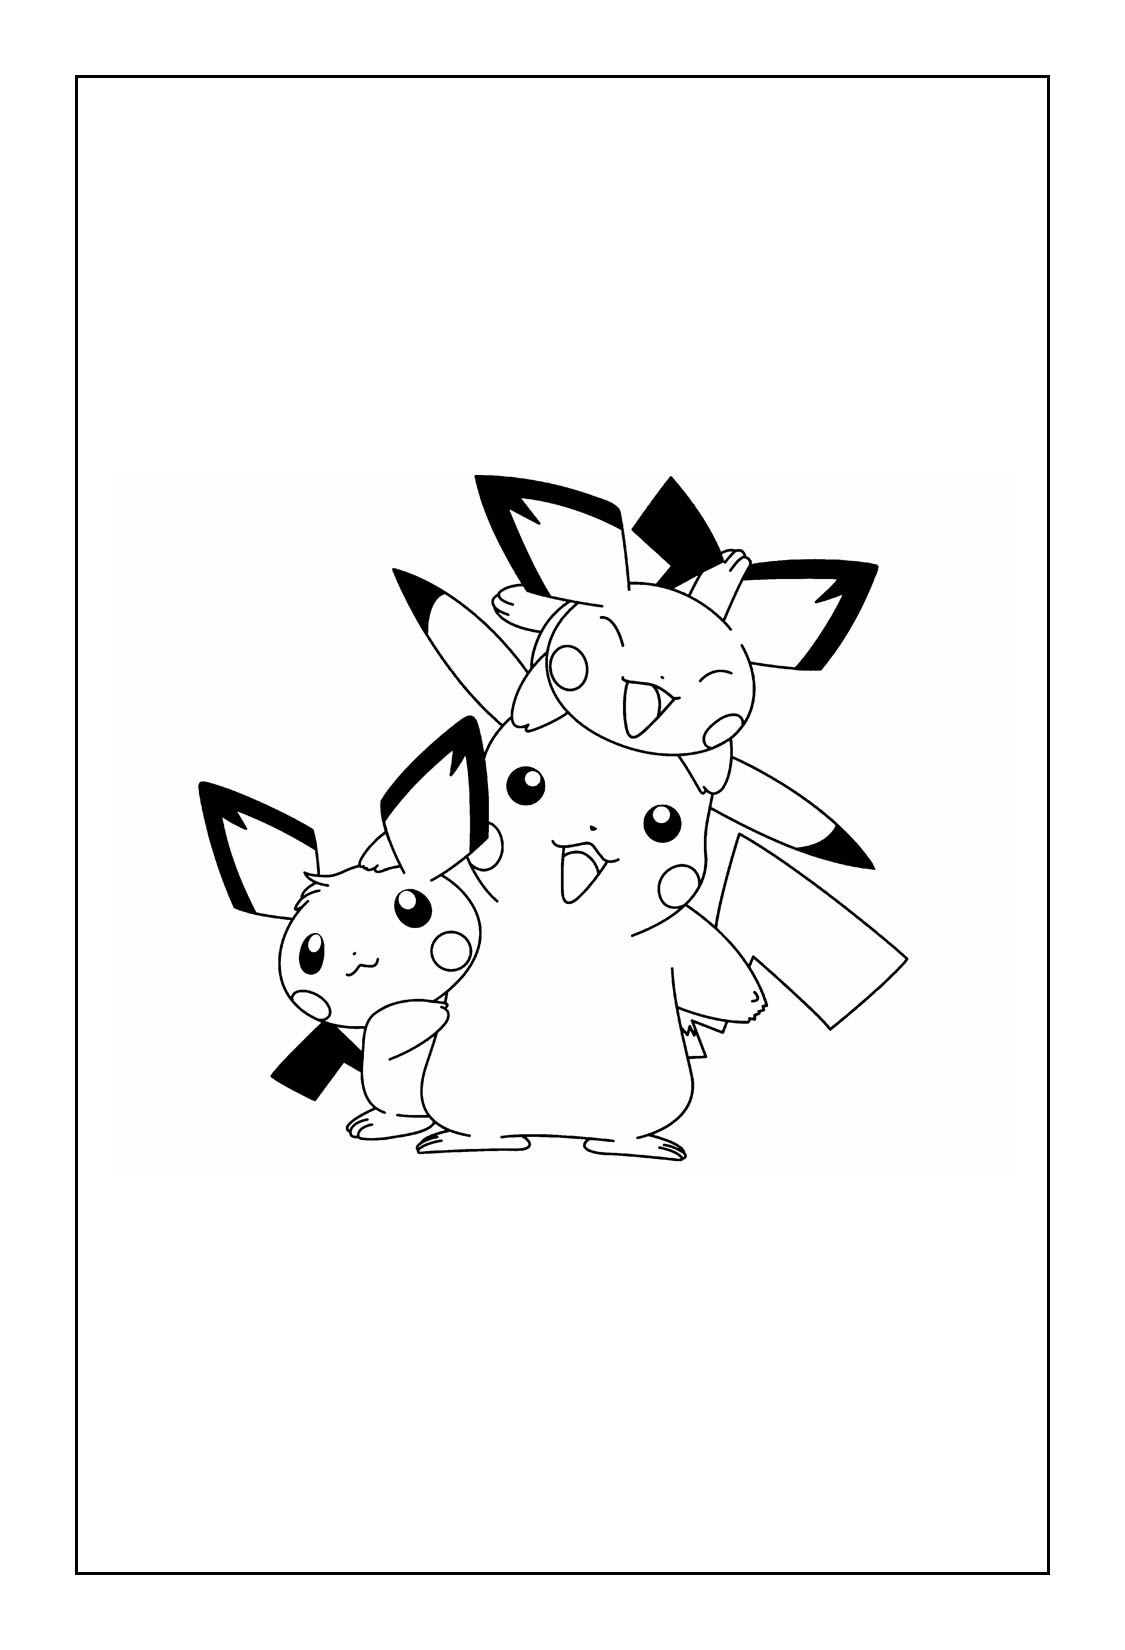 Pikachu Coloring Pages coloringrocks